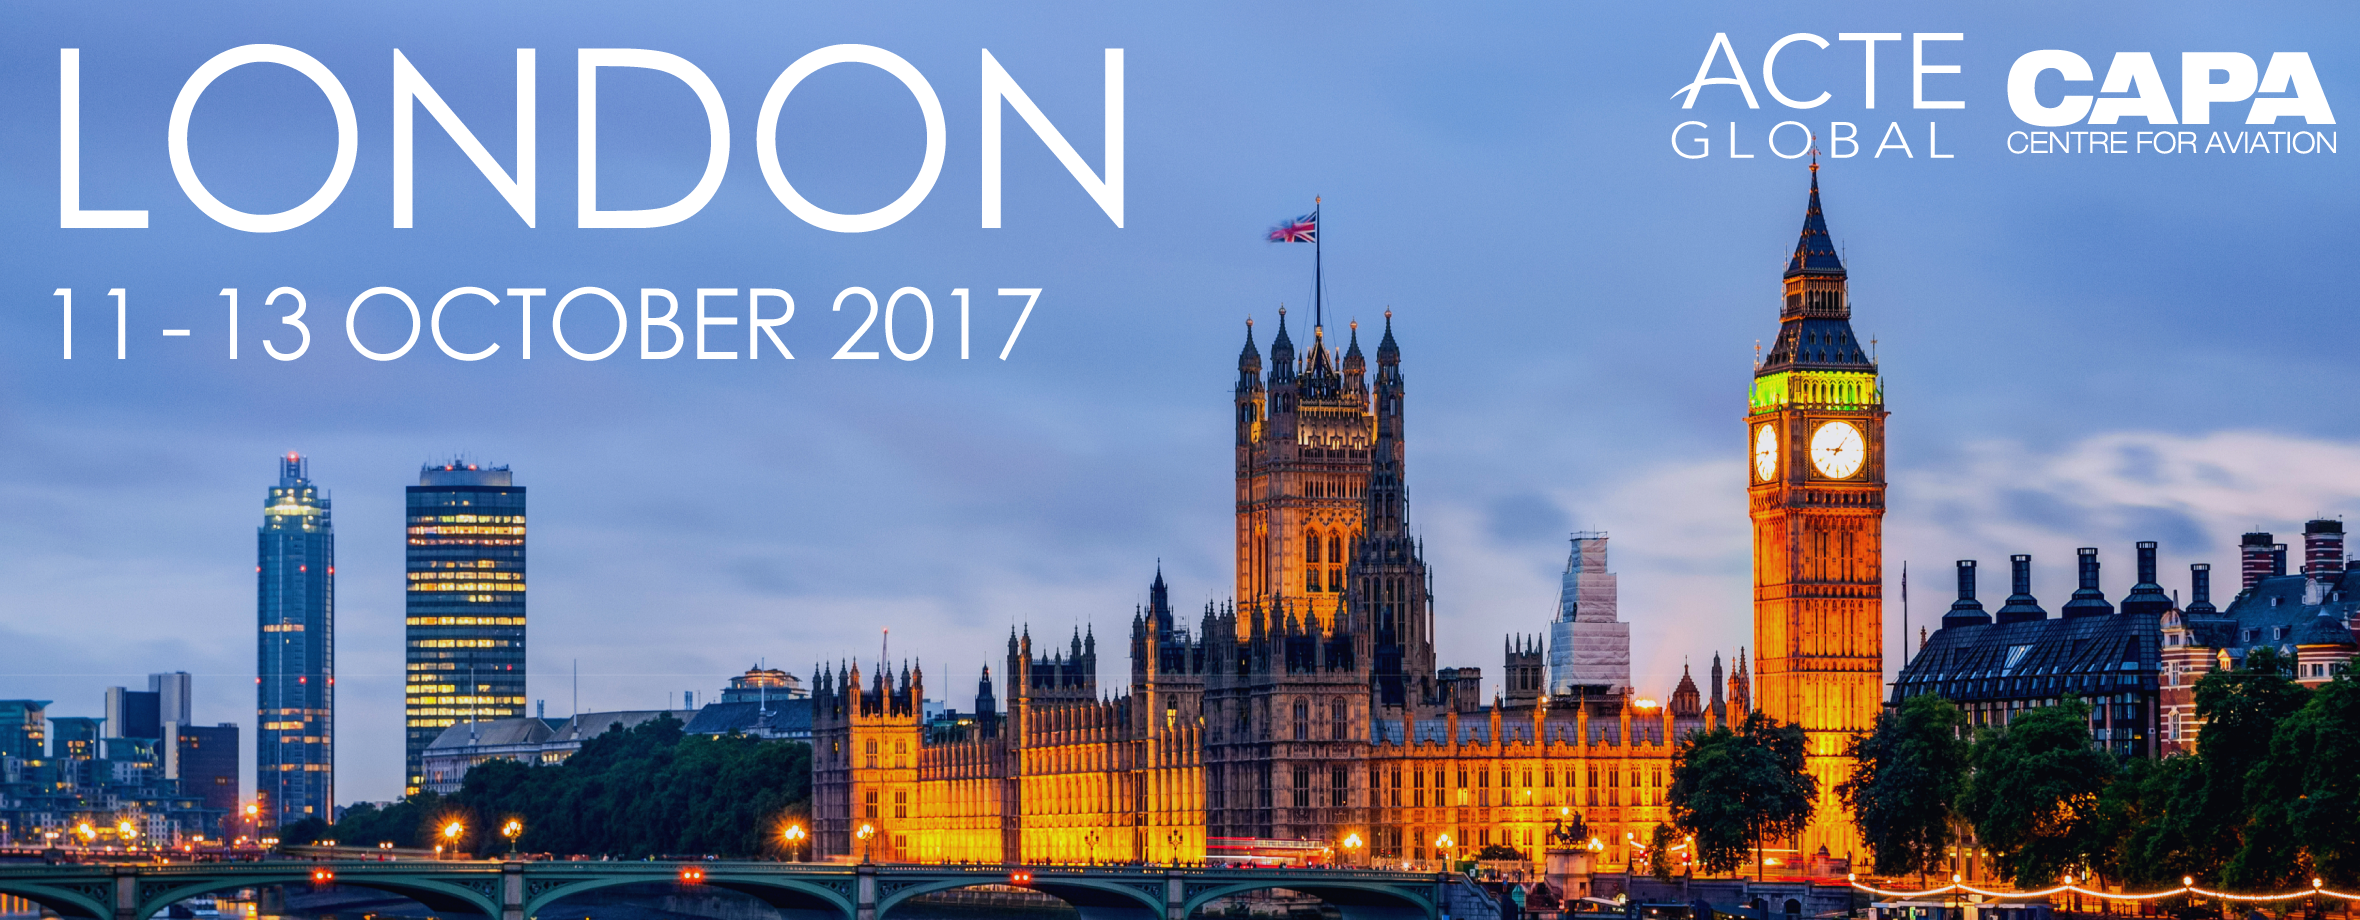 ACTE London Global Corporate Travel Conference